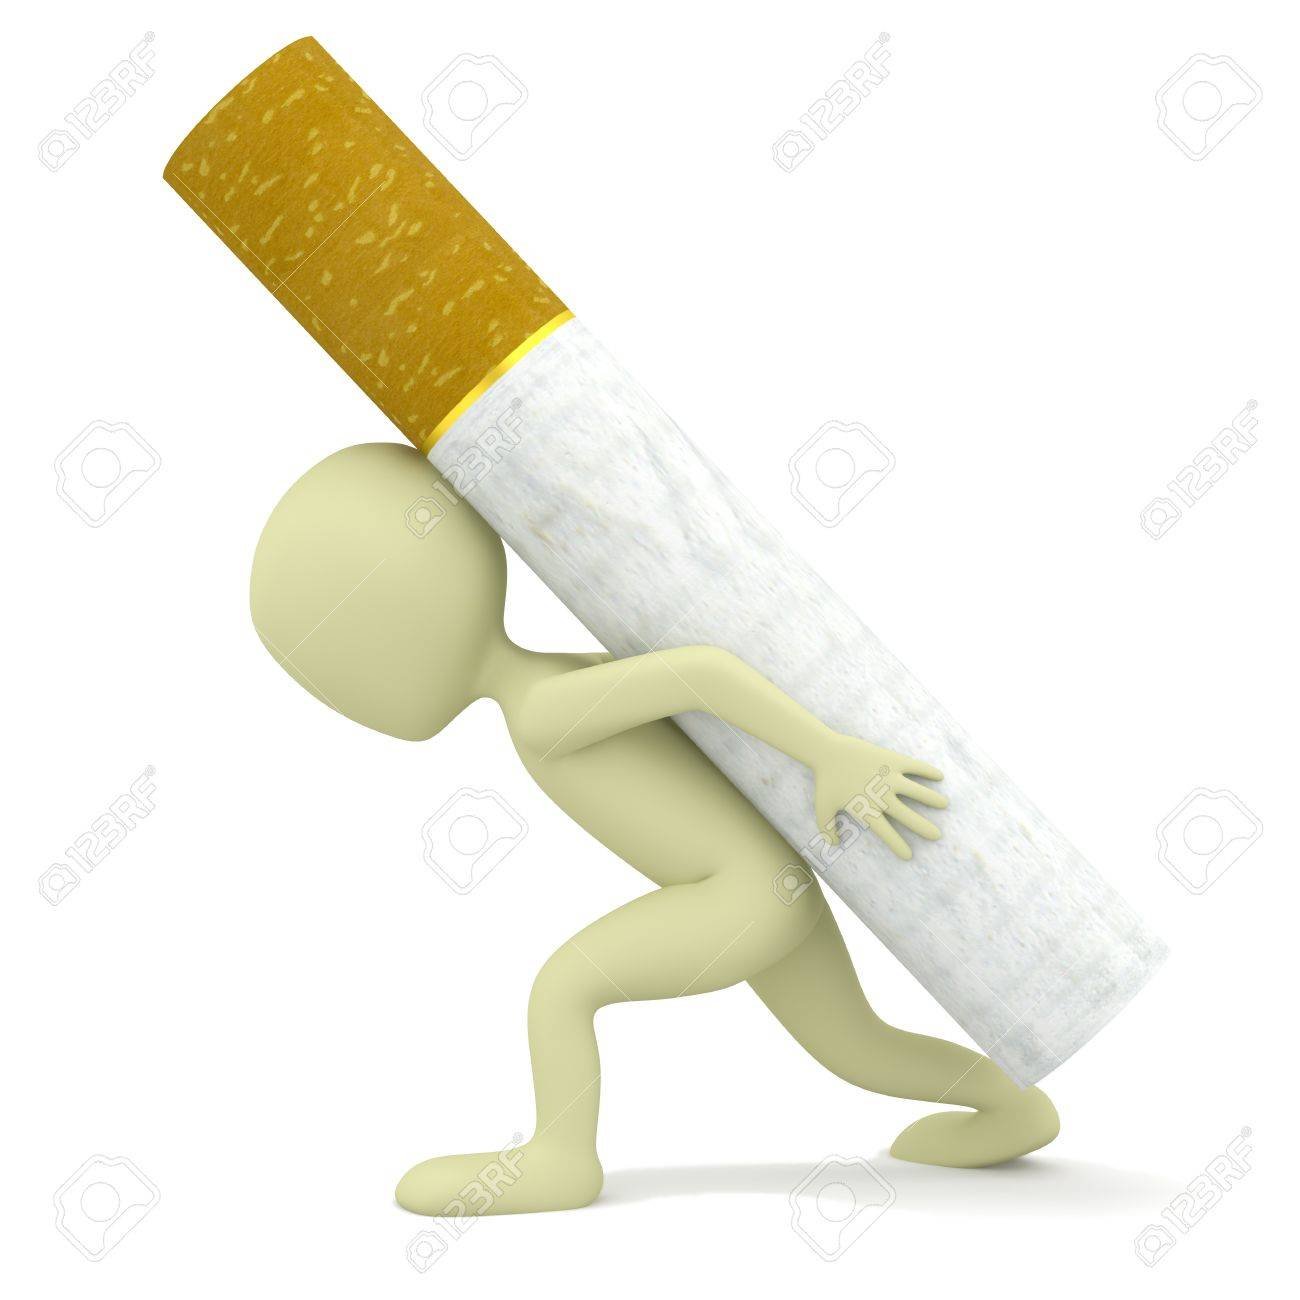 3d small person carries a heavy cigarette  3d image  On a white background Stock Photo - 17442628